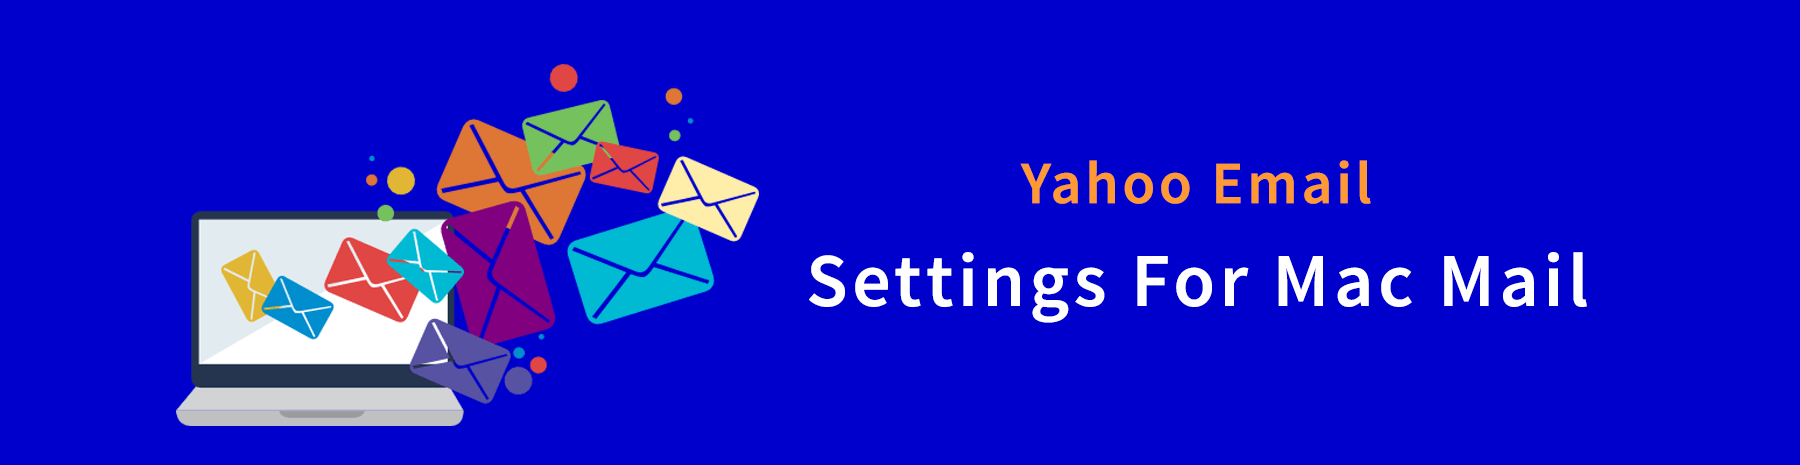 Yahoo-Email-Settings-For-Mac-Mail